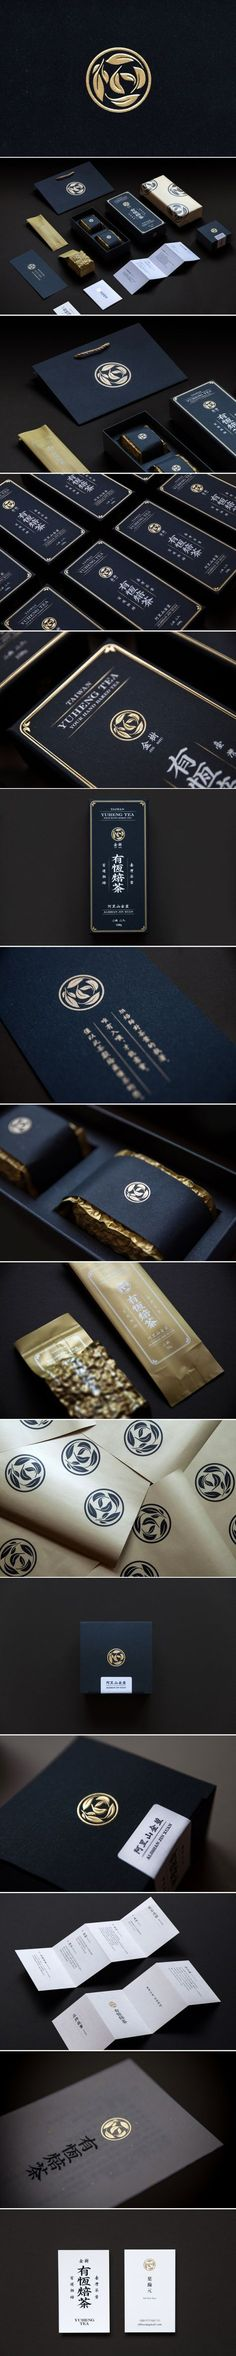 packaging / package design | Yuheng Tea - Brand identity & Packaging Design by Onion Design Associates